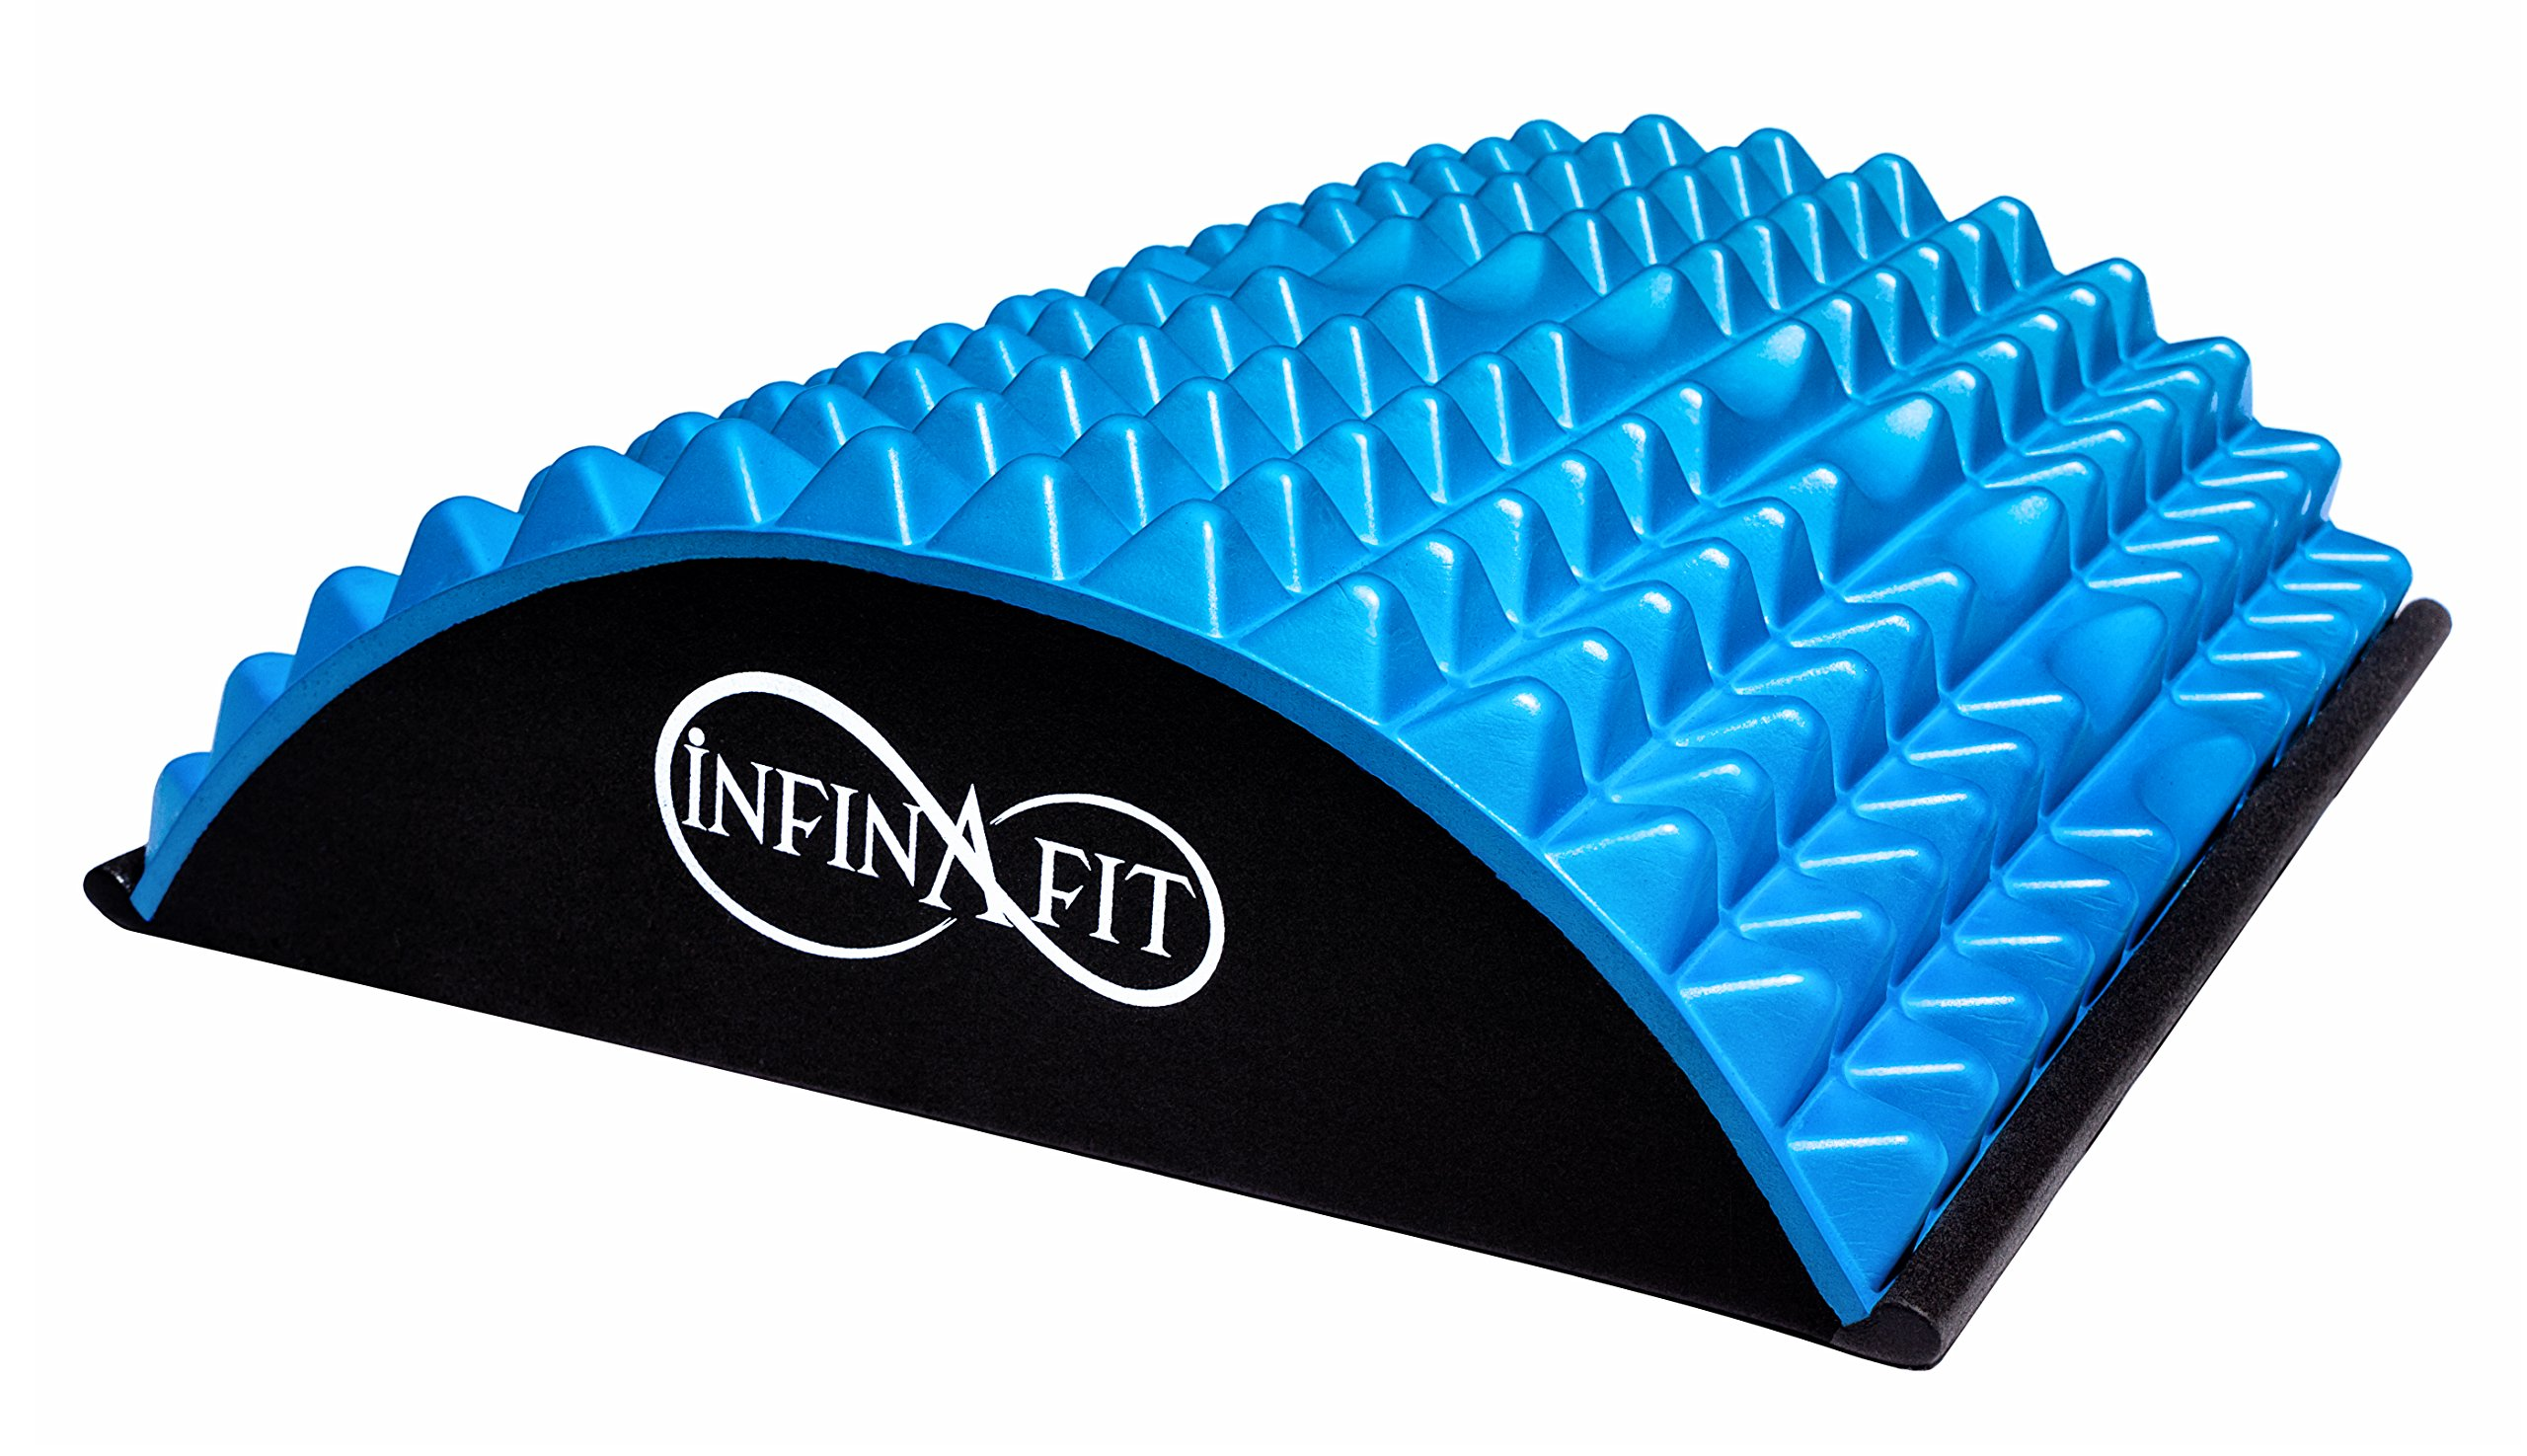 Infinafit Lumbar Stretcher for Pain Relief | Naturally Quell Back Pain Related to Muscle Tension, Excessive Flexion, Poor Spinal Alignment, Degenerative Changes and More | Acupressure Massage Therapy by ImpiriLux